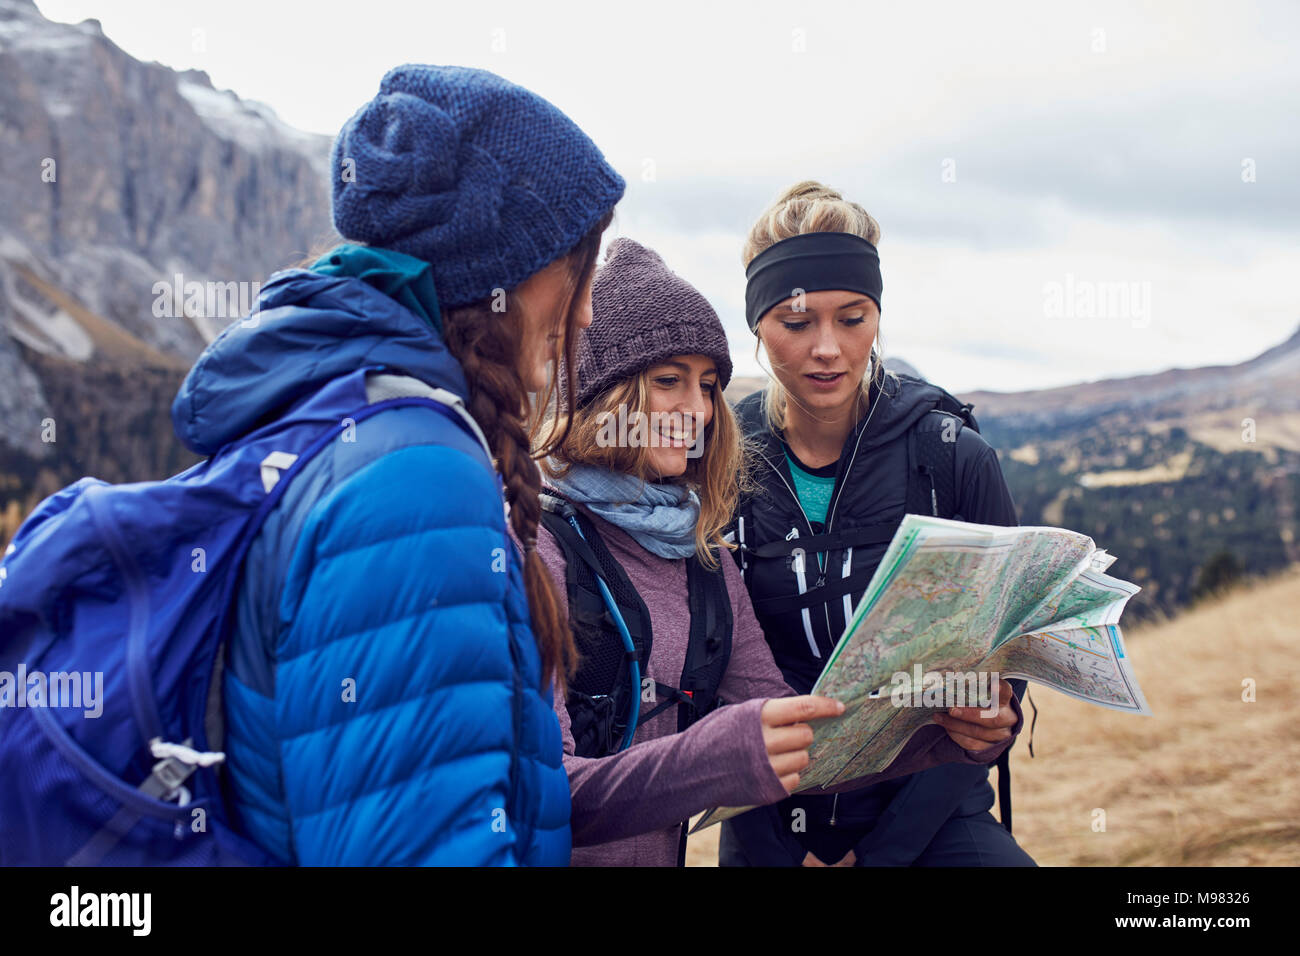 Three young women hiking in the mountains looking at map - Stock Image